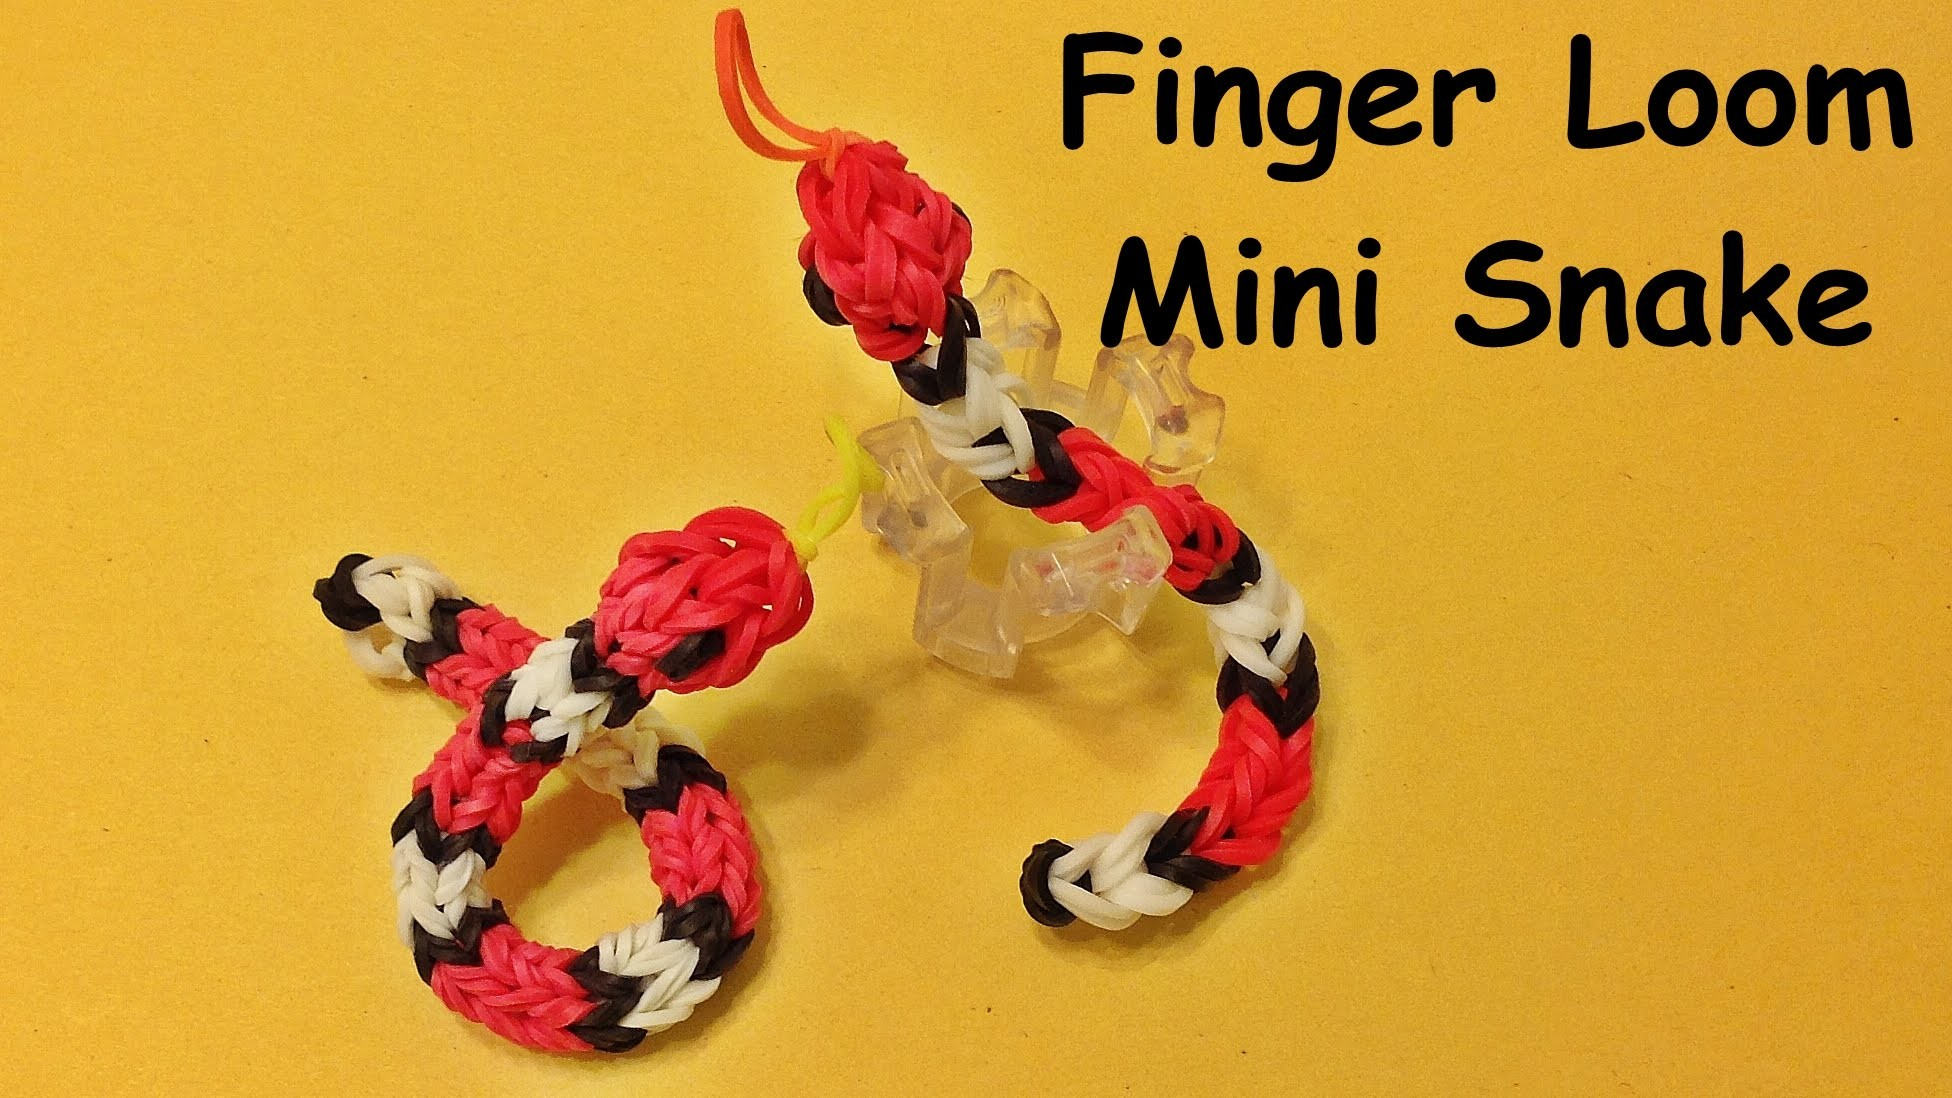 Rainbow Loom Baby Snake on the Finger Loom (make with loom bands)